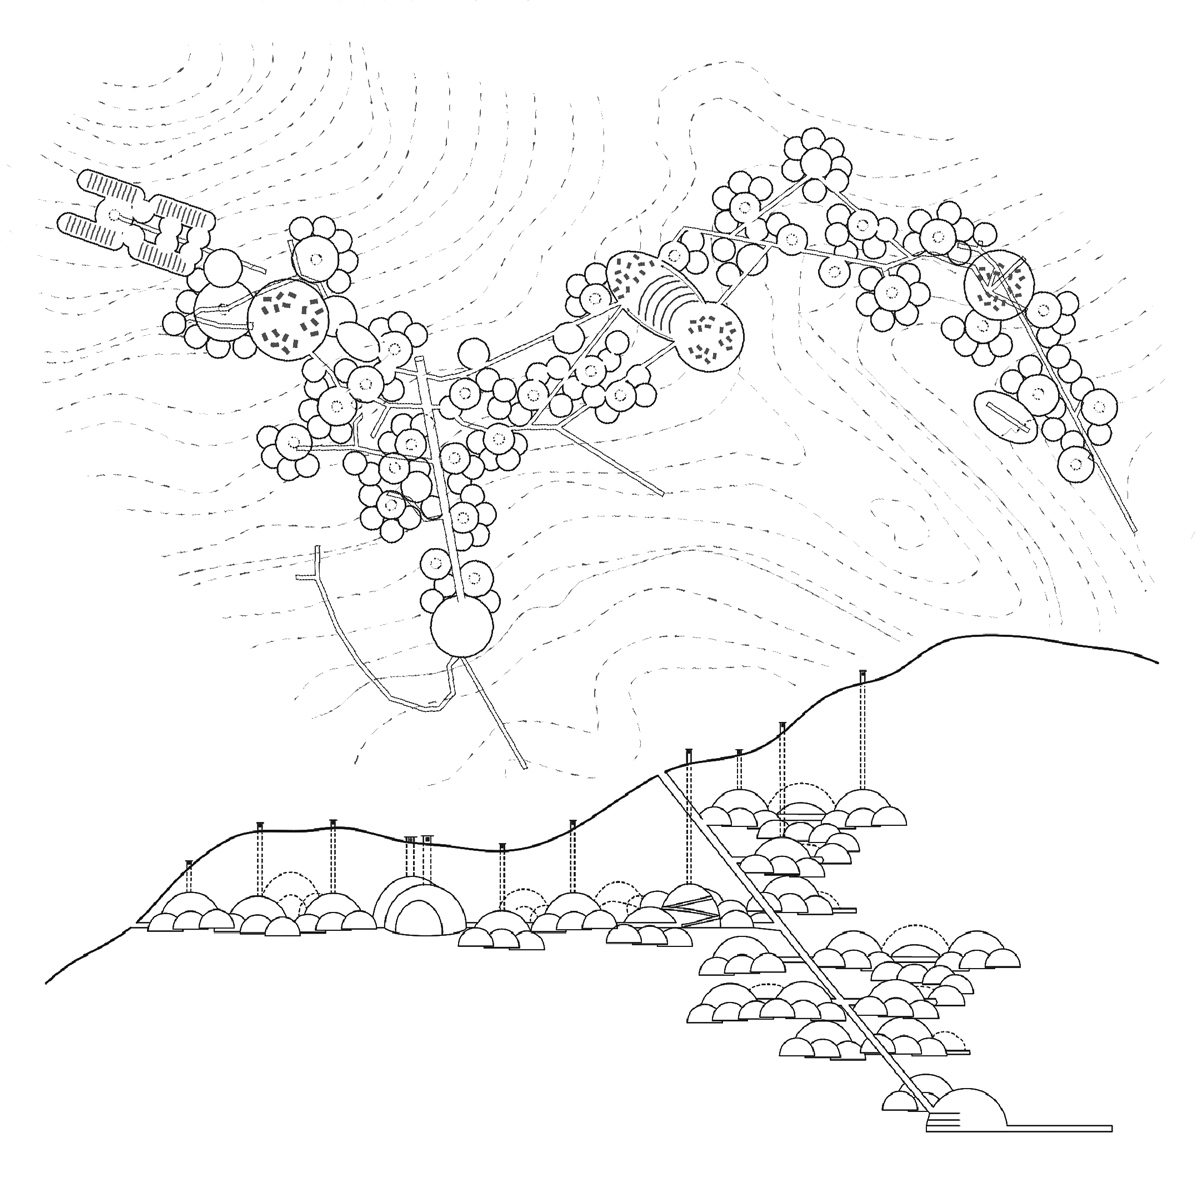 Combined plan and section study for a hidden community of underground mountain dwellings by student Brandon Powell